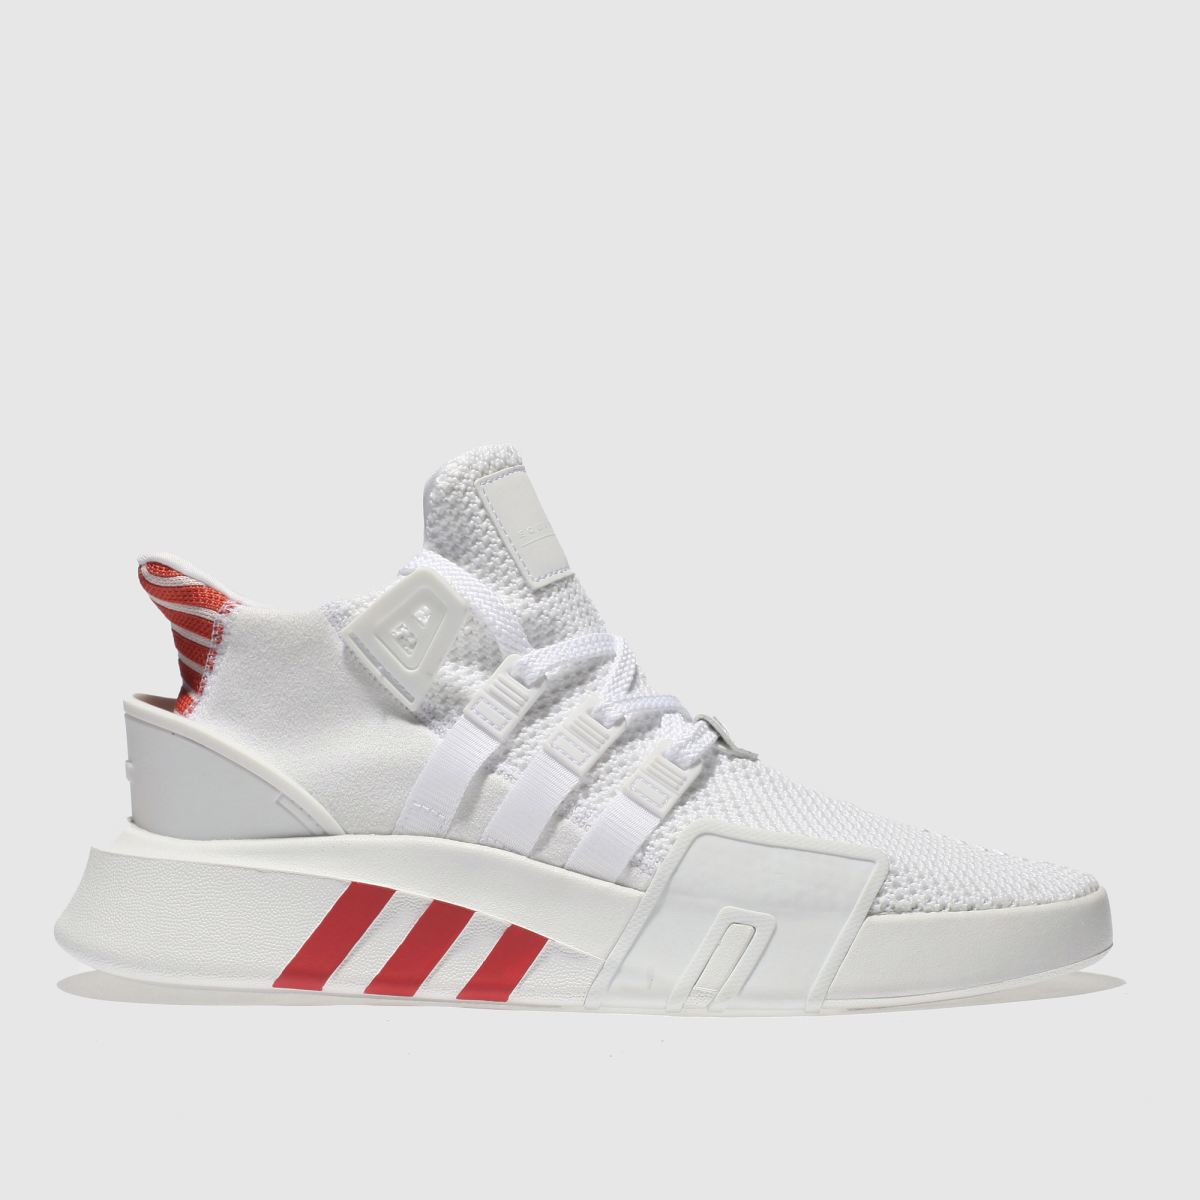 Adidas White & Red Eqt Basketball Adv Trainers